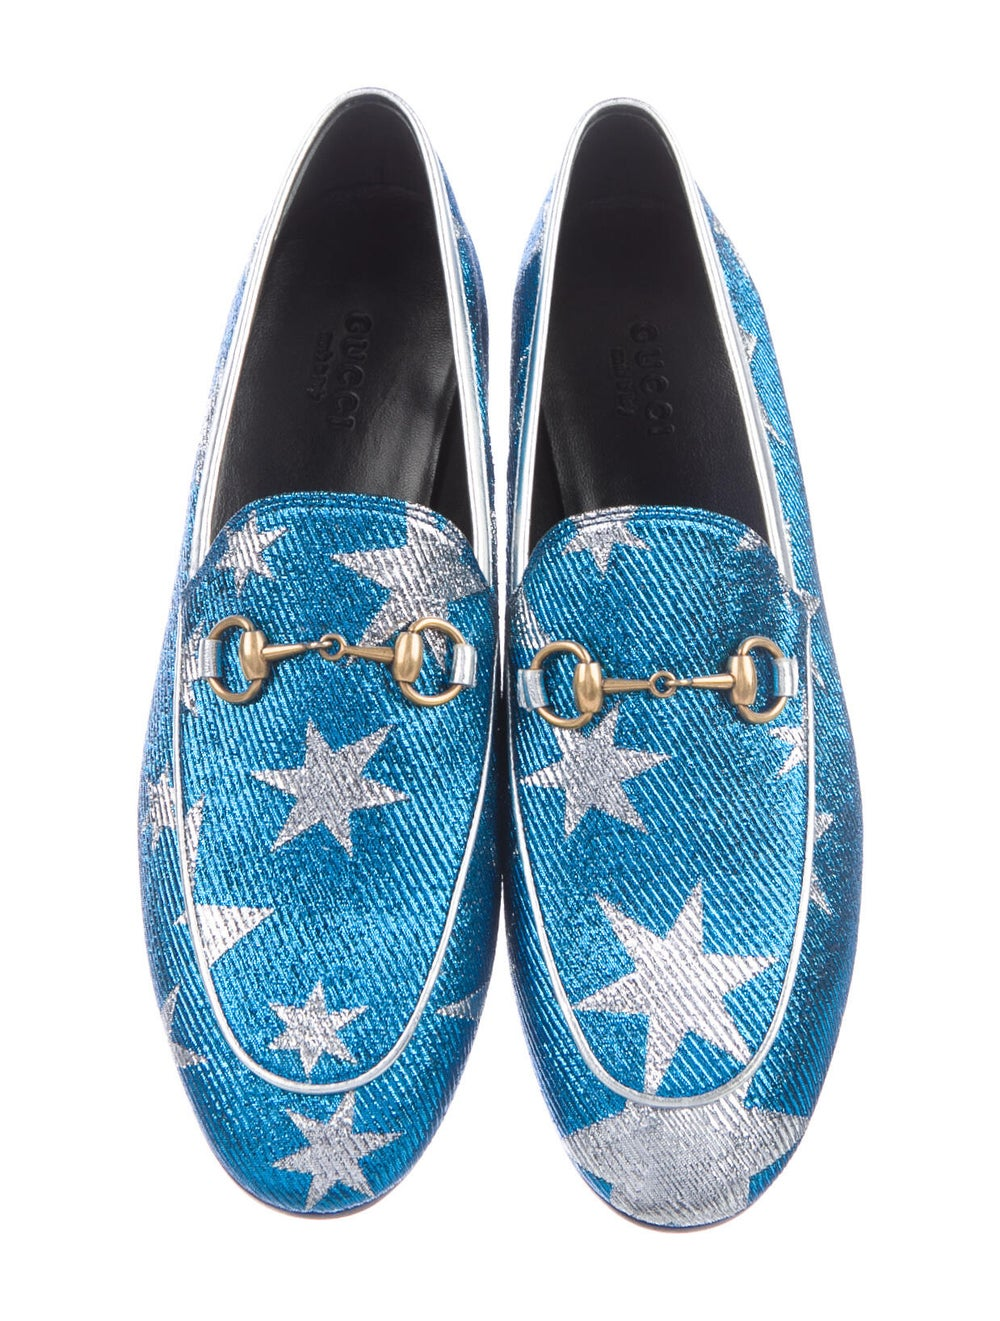 Gucci Horsebit Accent Patterned Loafers w/ Tags B… - image 3